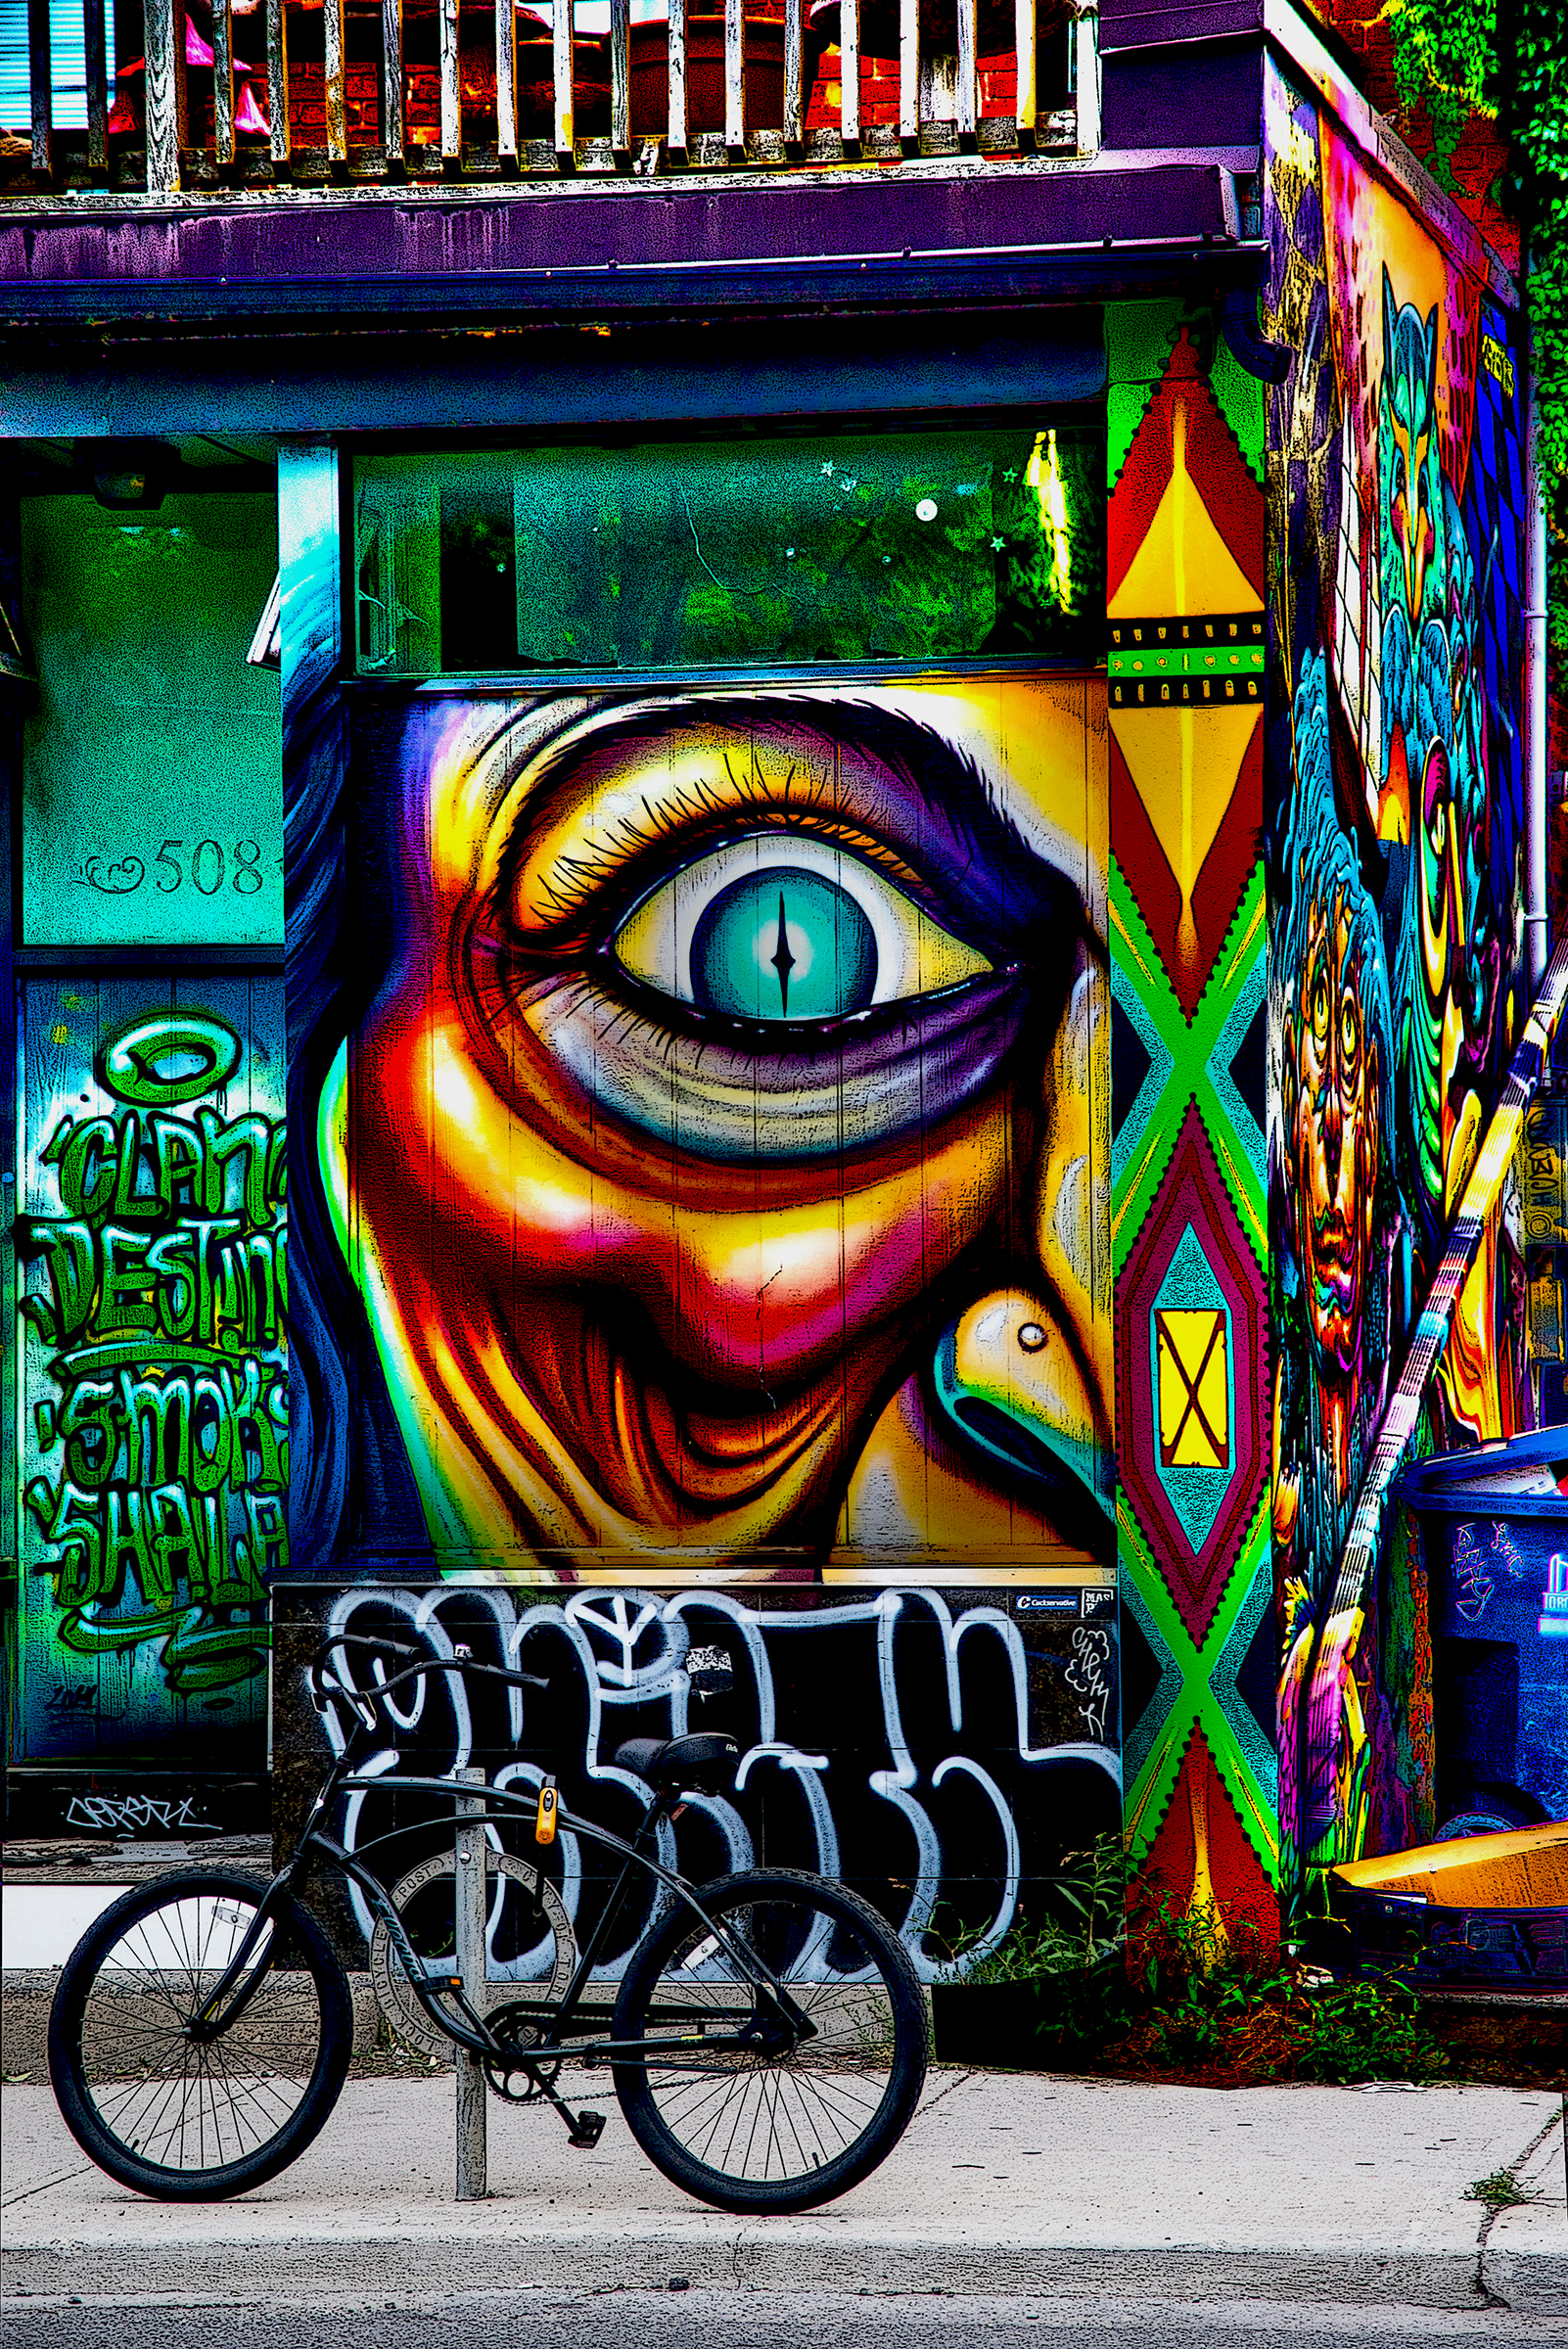 "Bathurst Graffiti #1 - 2016 , part of a two image set - see Collections for my Original Work featuring Toronto centric images as high resolution, signed and numbered fine art prints  printed on fine art paper, metallic paper, canvas, metal, wood, glass, and acrylic in sizes ranging to 60"" x 40"" or call me to commission meaningful Art for your walls featuring your favorite views, places, people, pets, hang outs, things, etc.,."